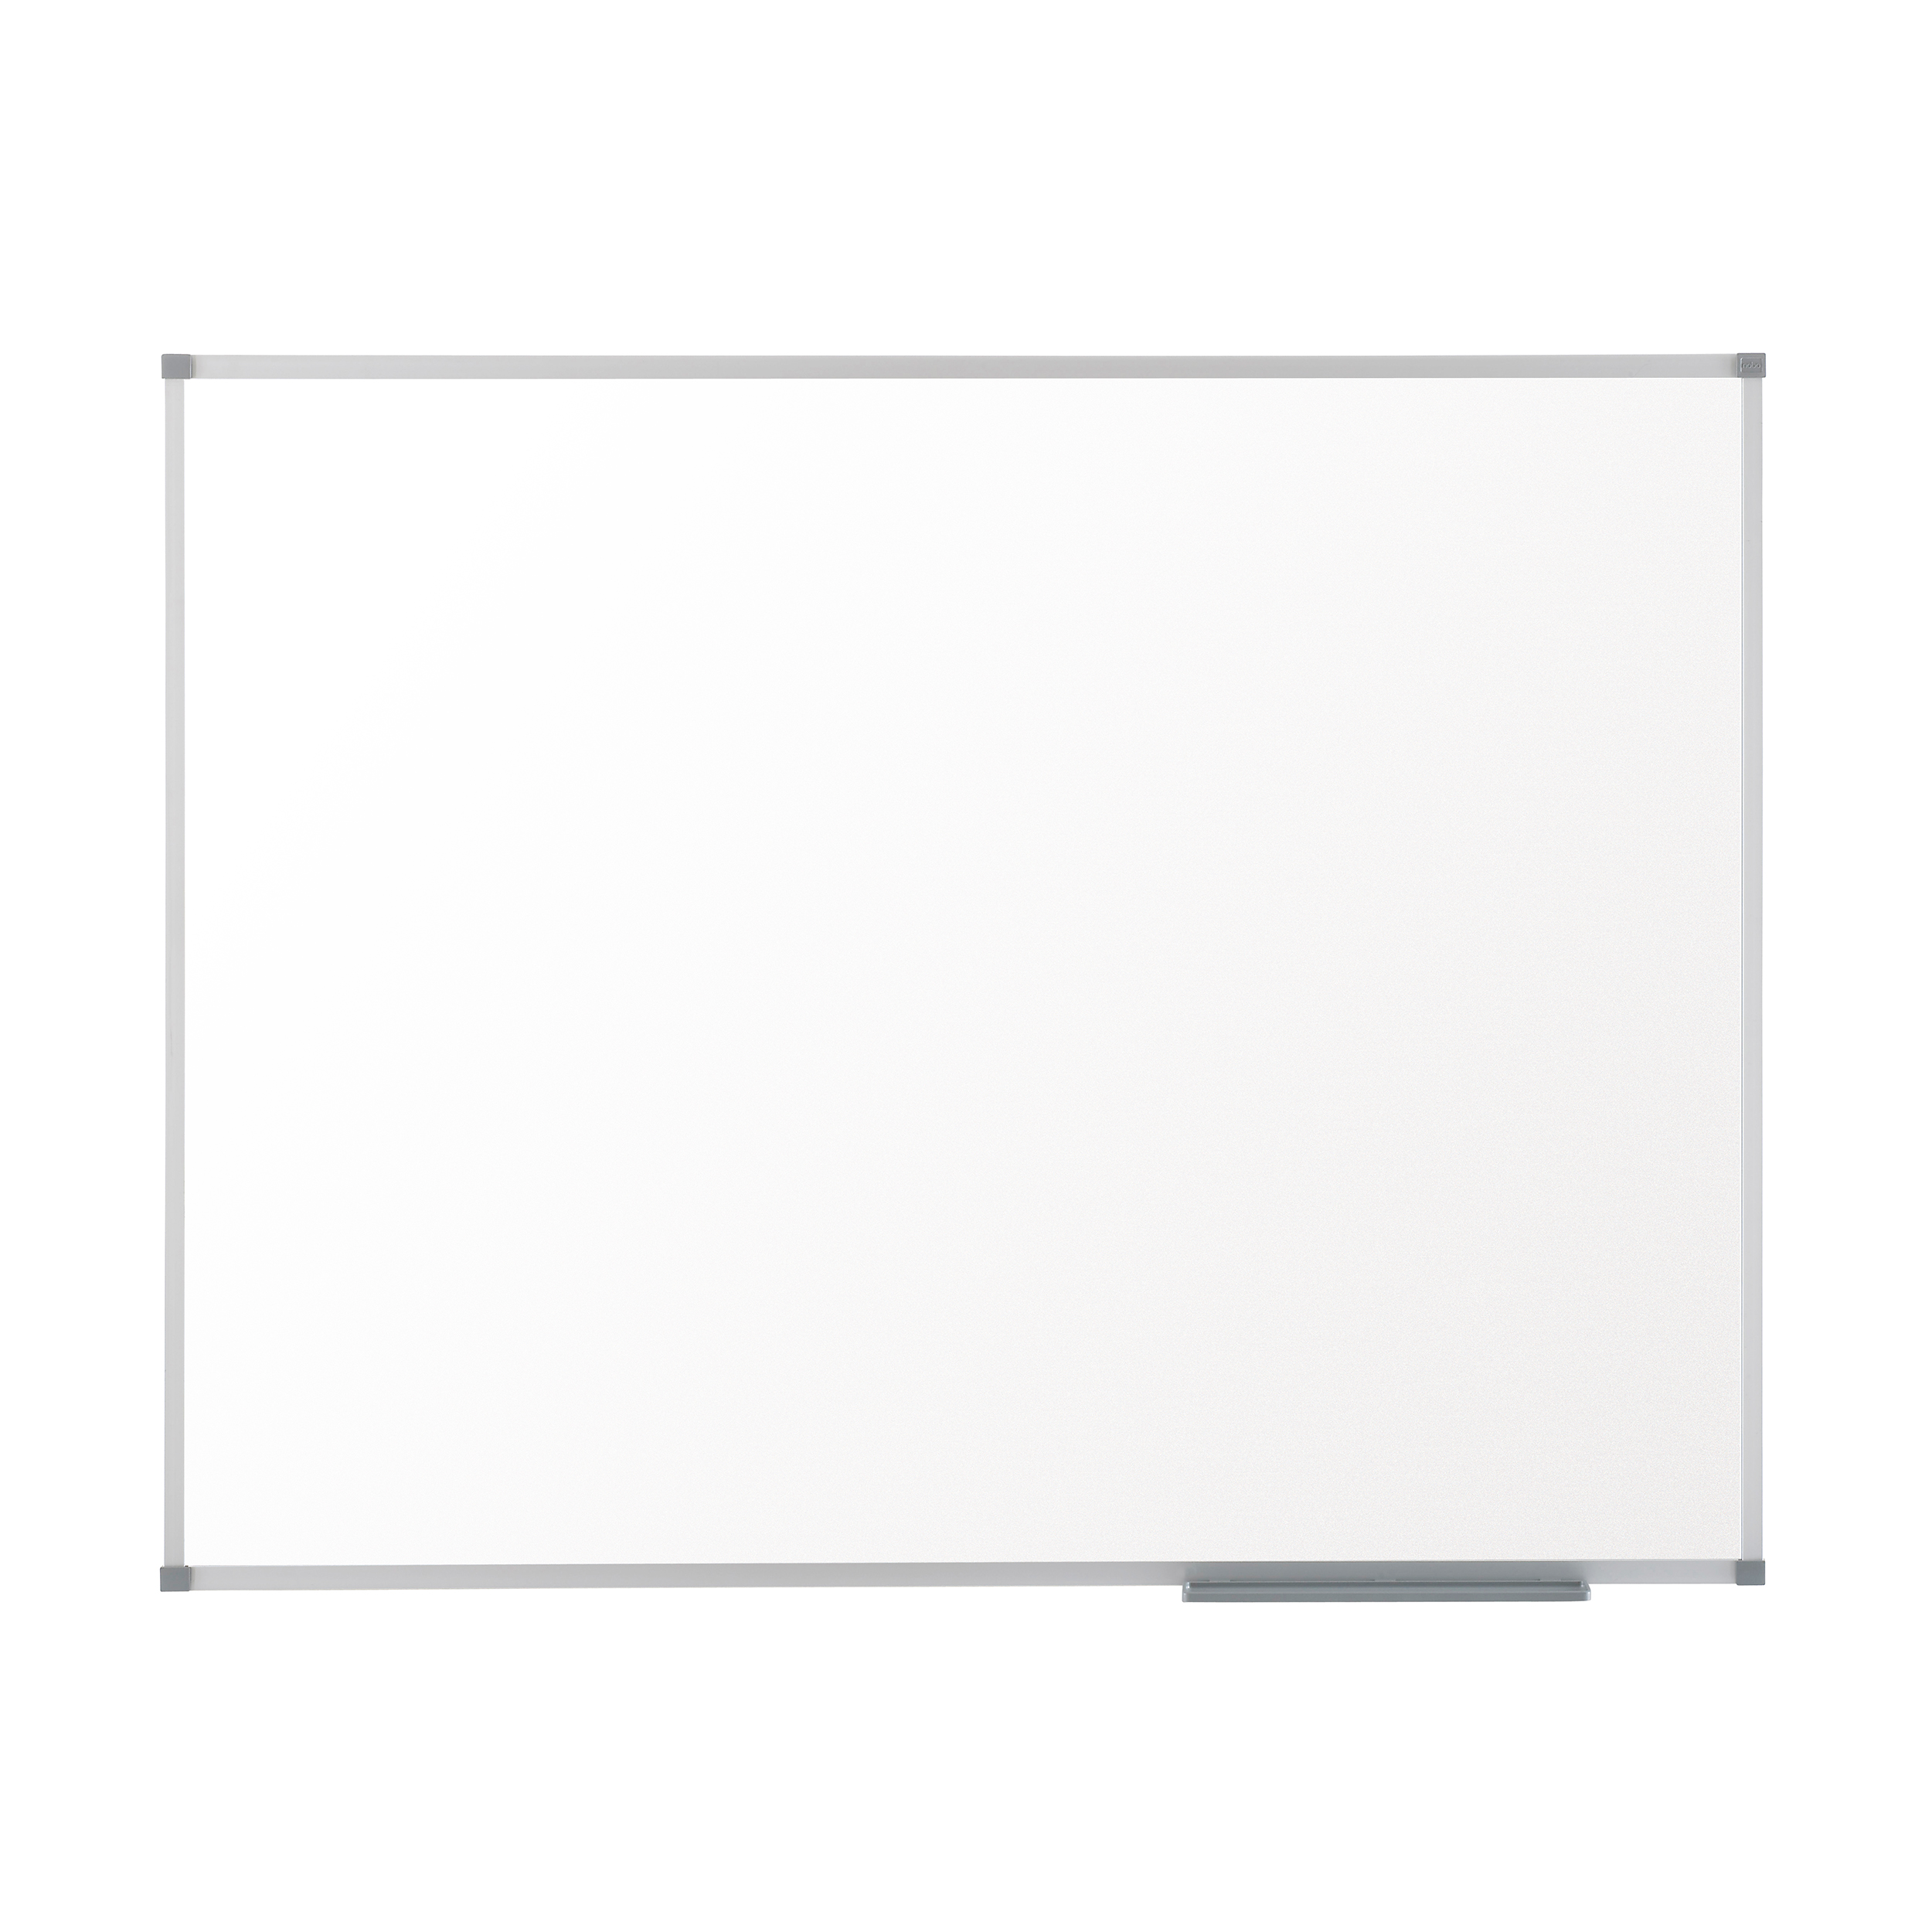 Magnetic Nobo Basic Steel Whiteboard Magnetic Fixings Included W900xH600mm White Ref 1905210